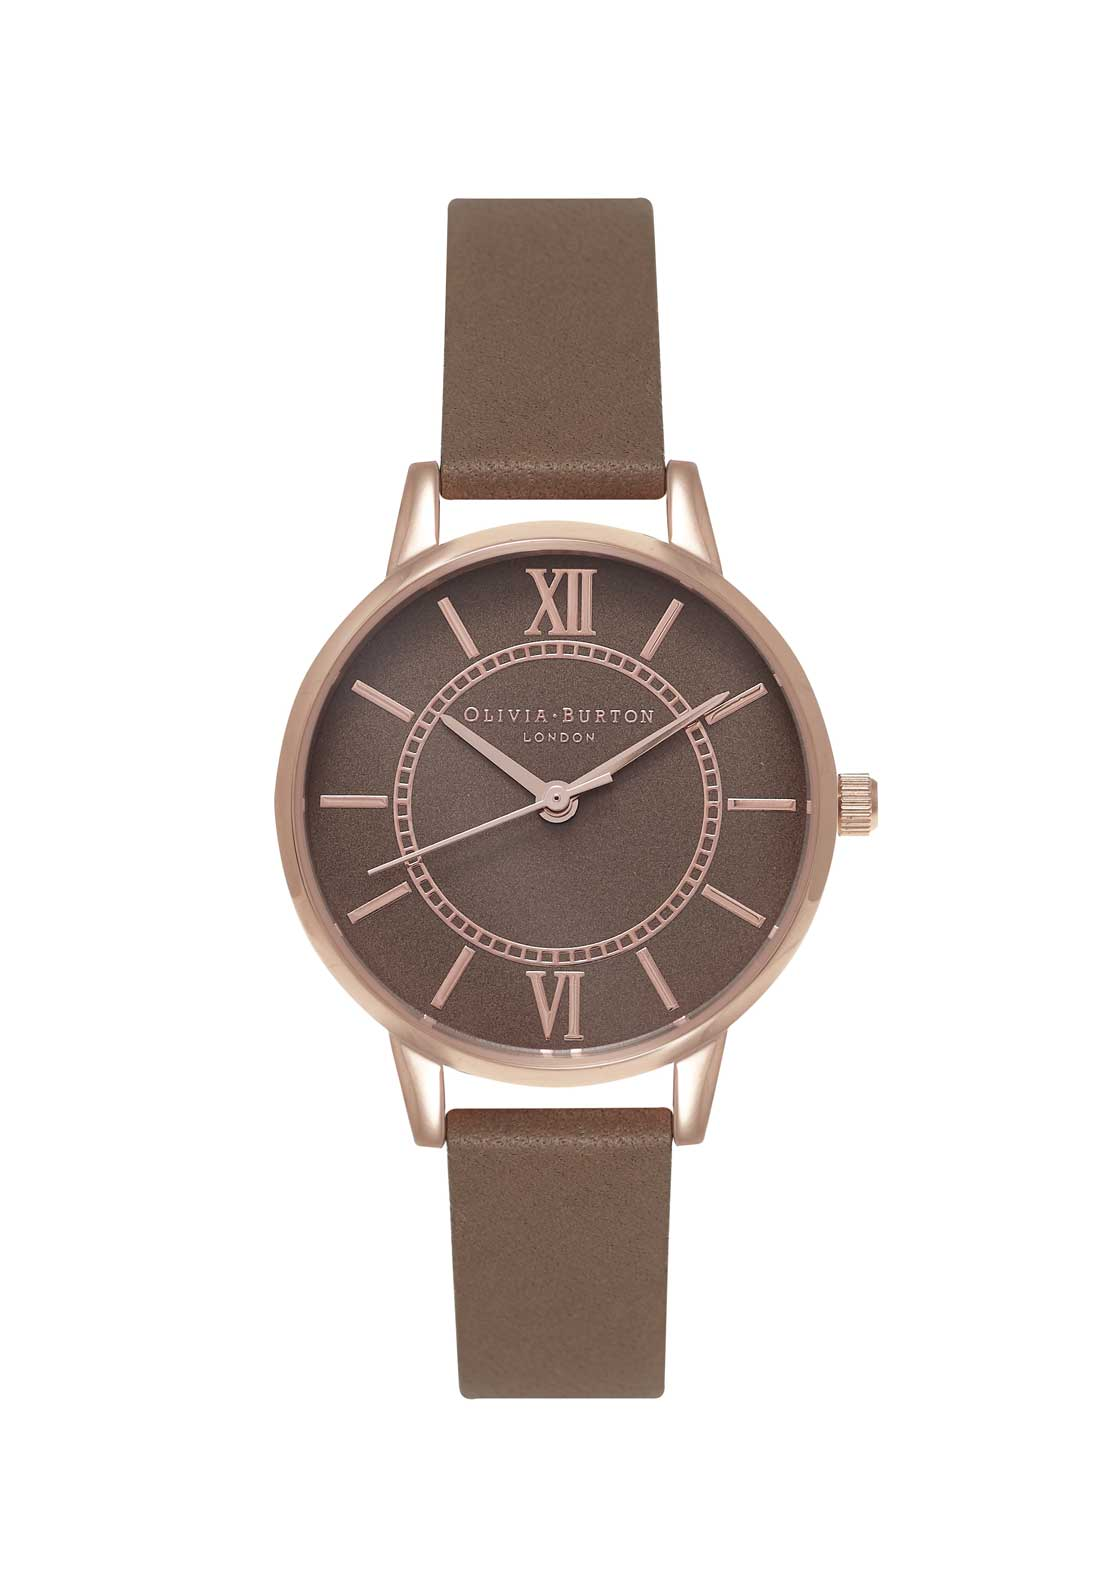 Olivia Burton Wonderland Watch in Taupe, Rose Gold